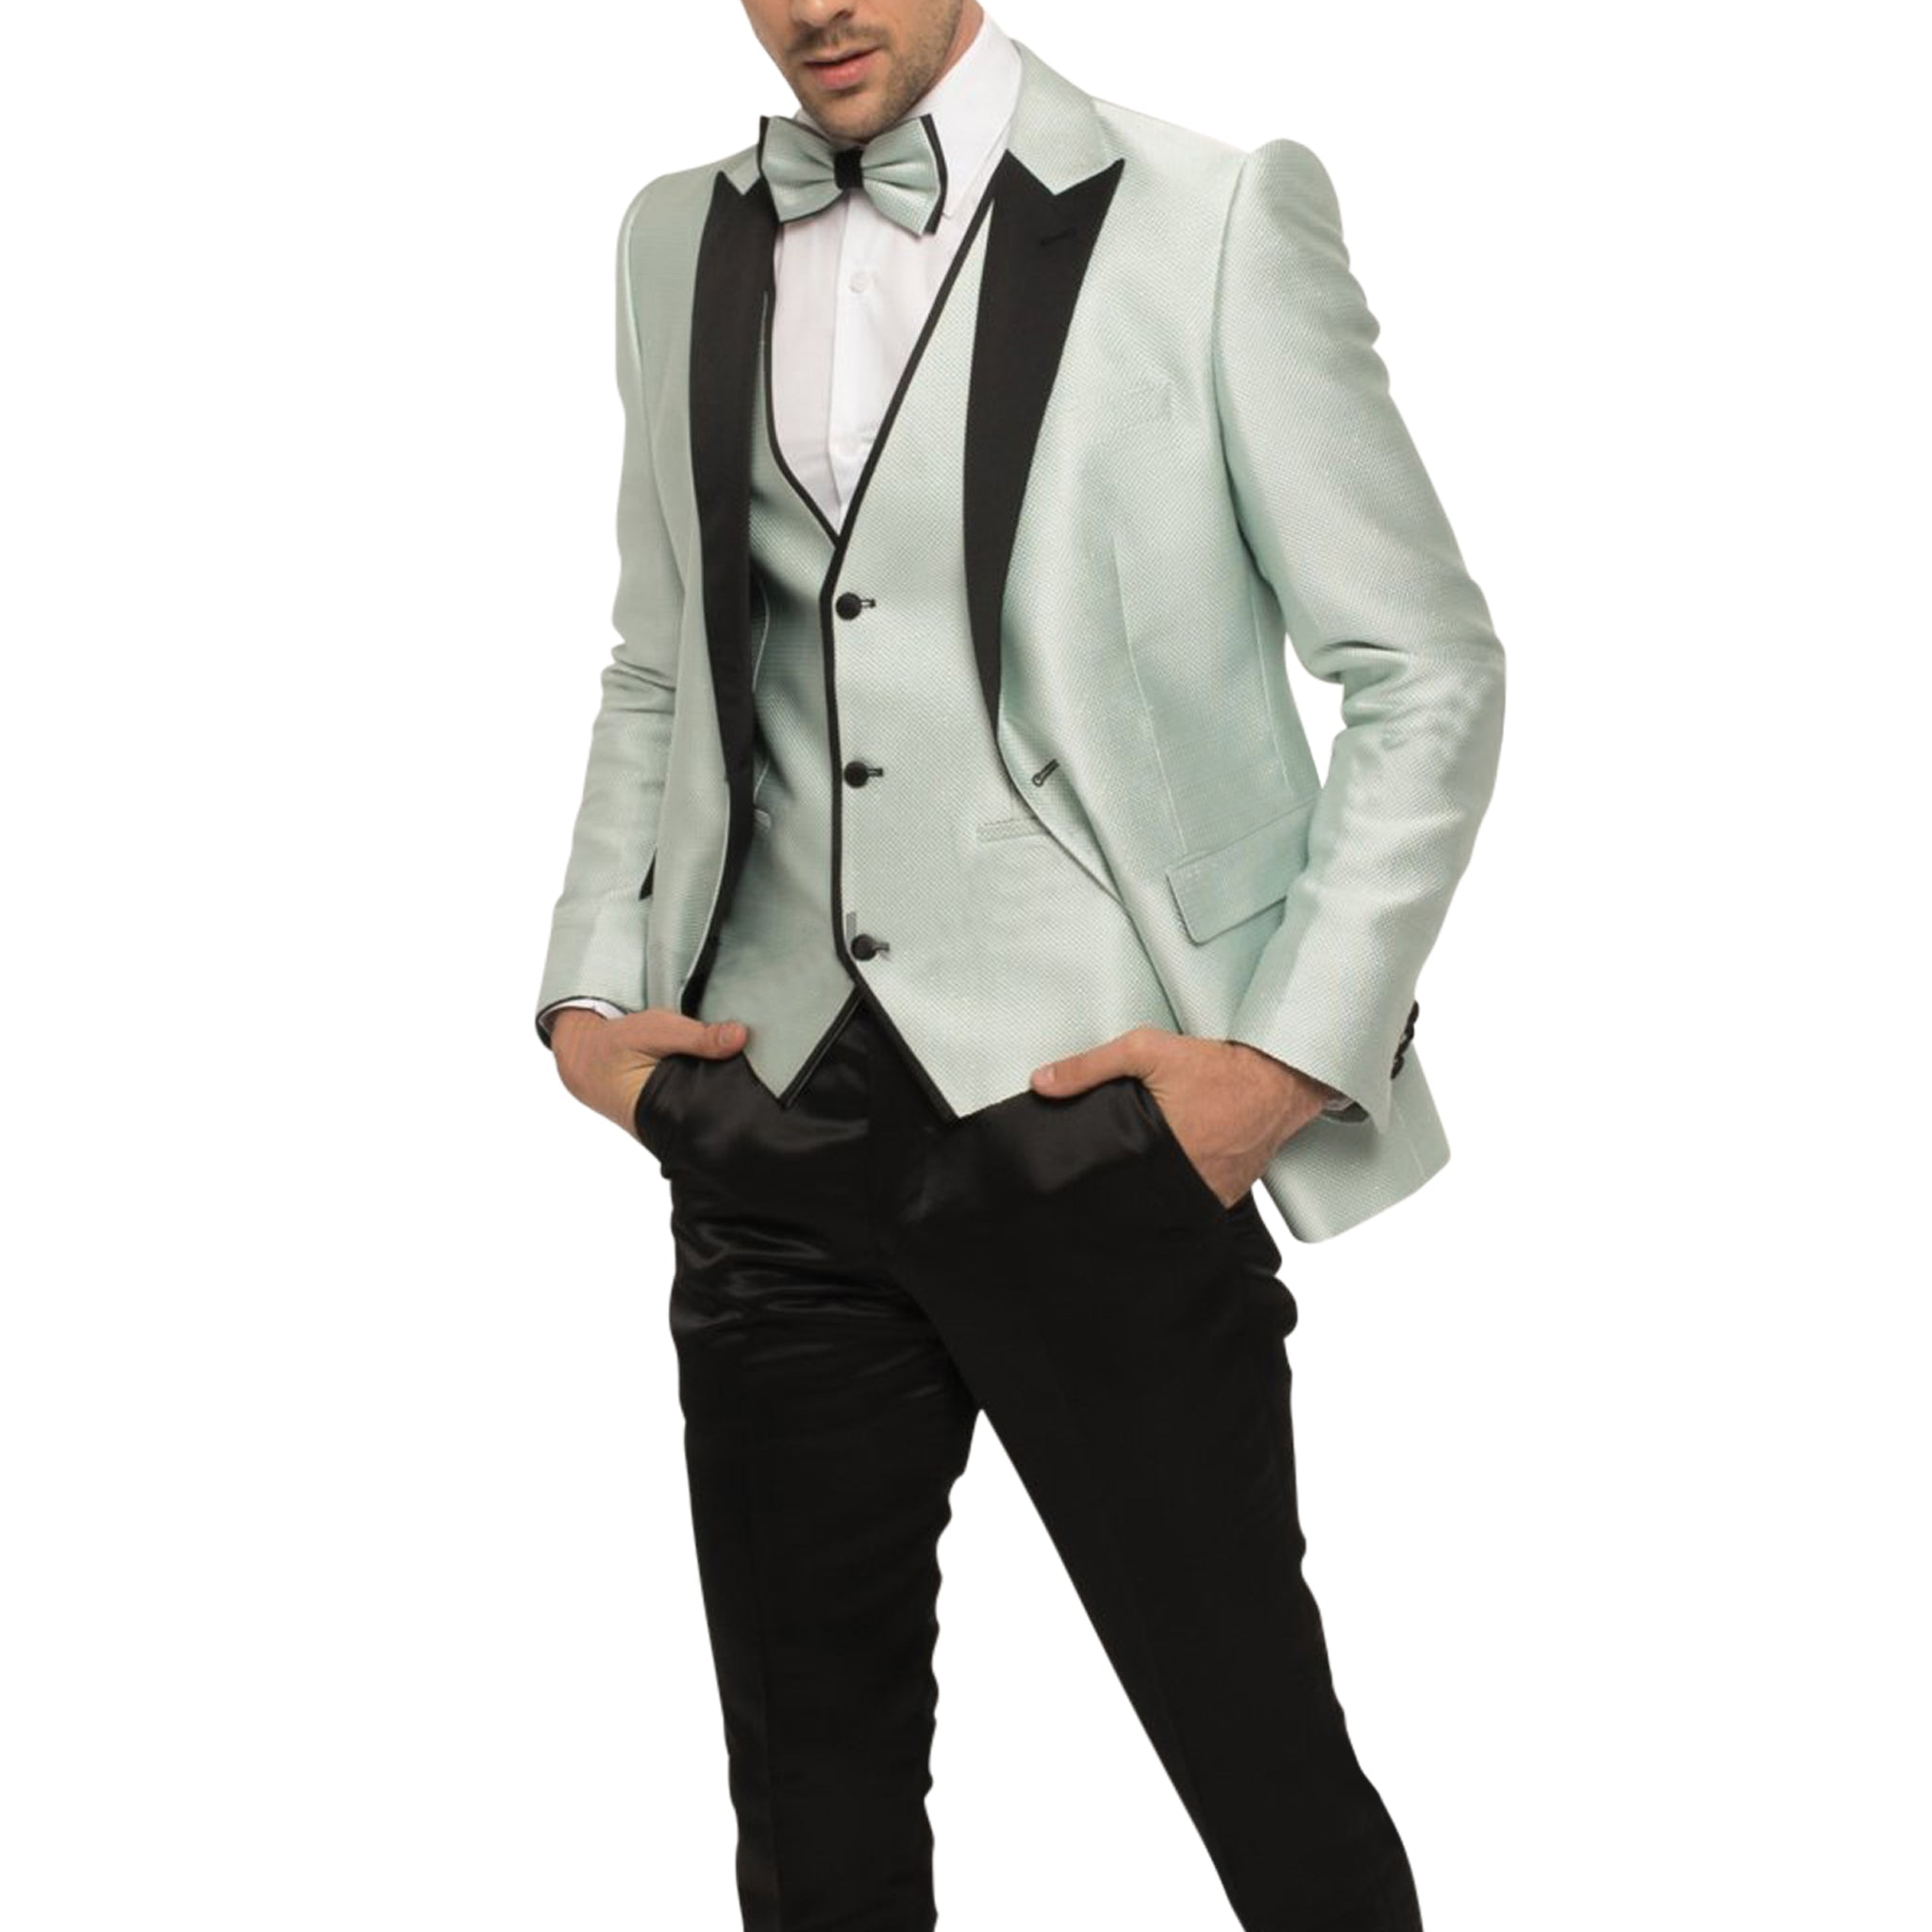 Mint Tuxedo With Mint Vest and Bowtie